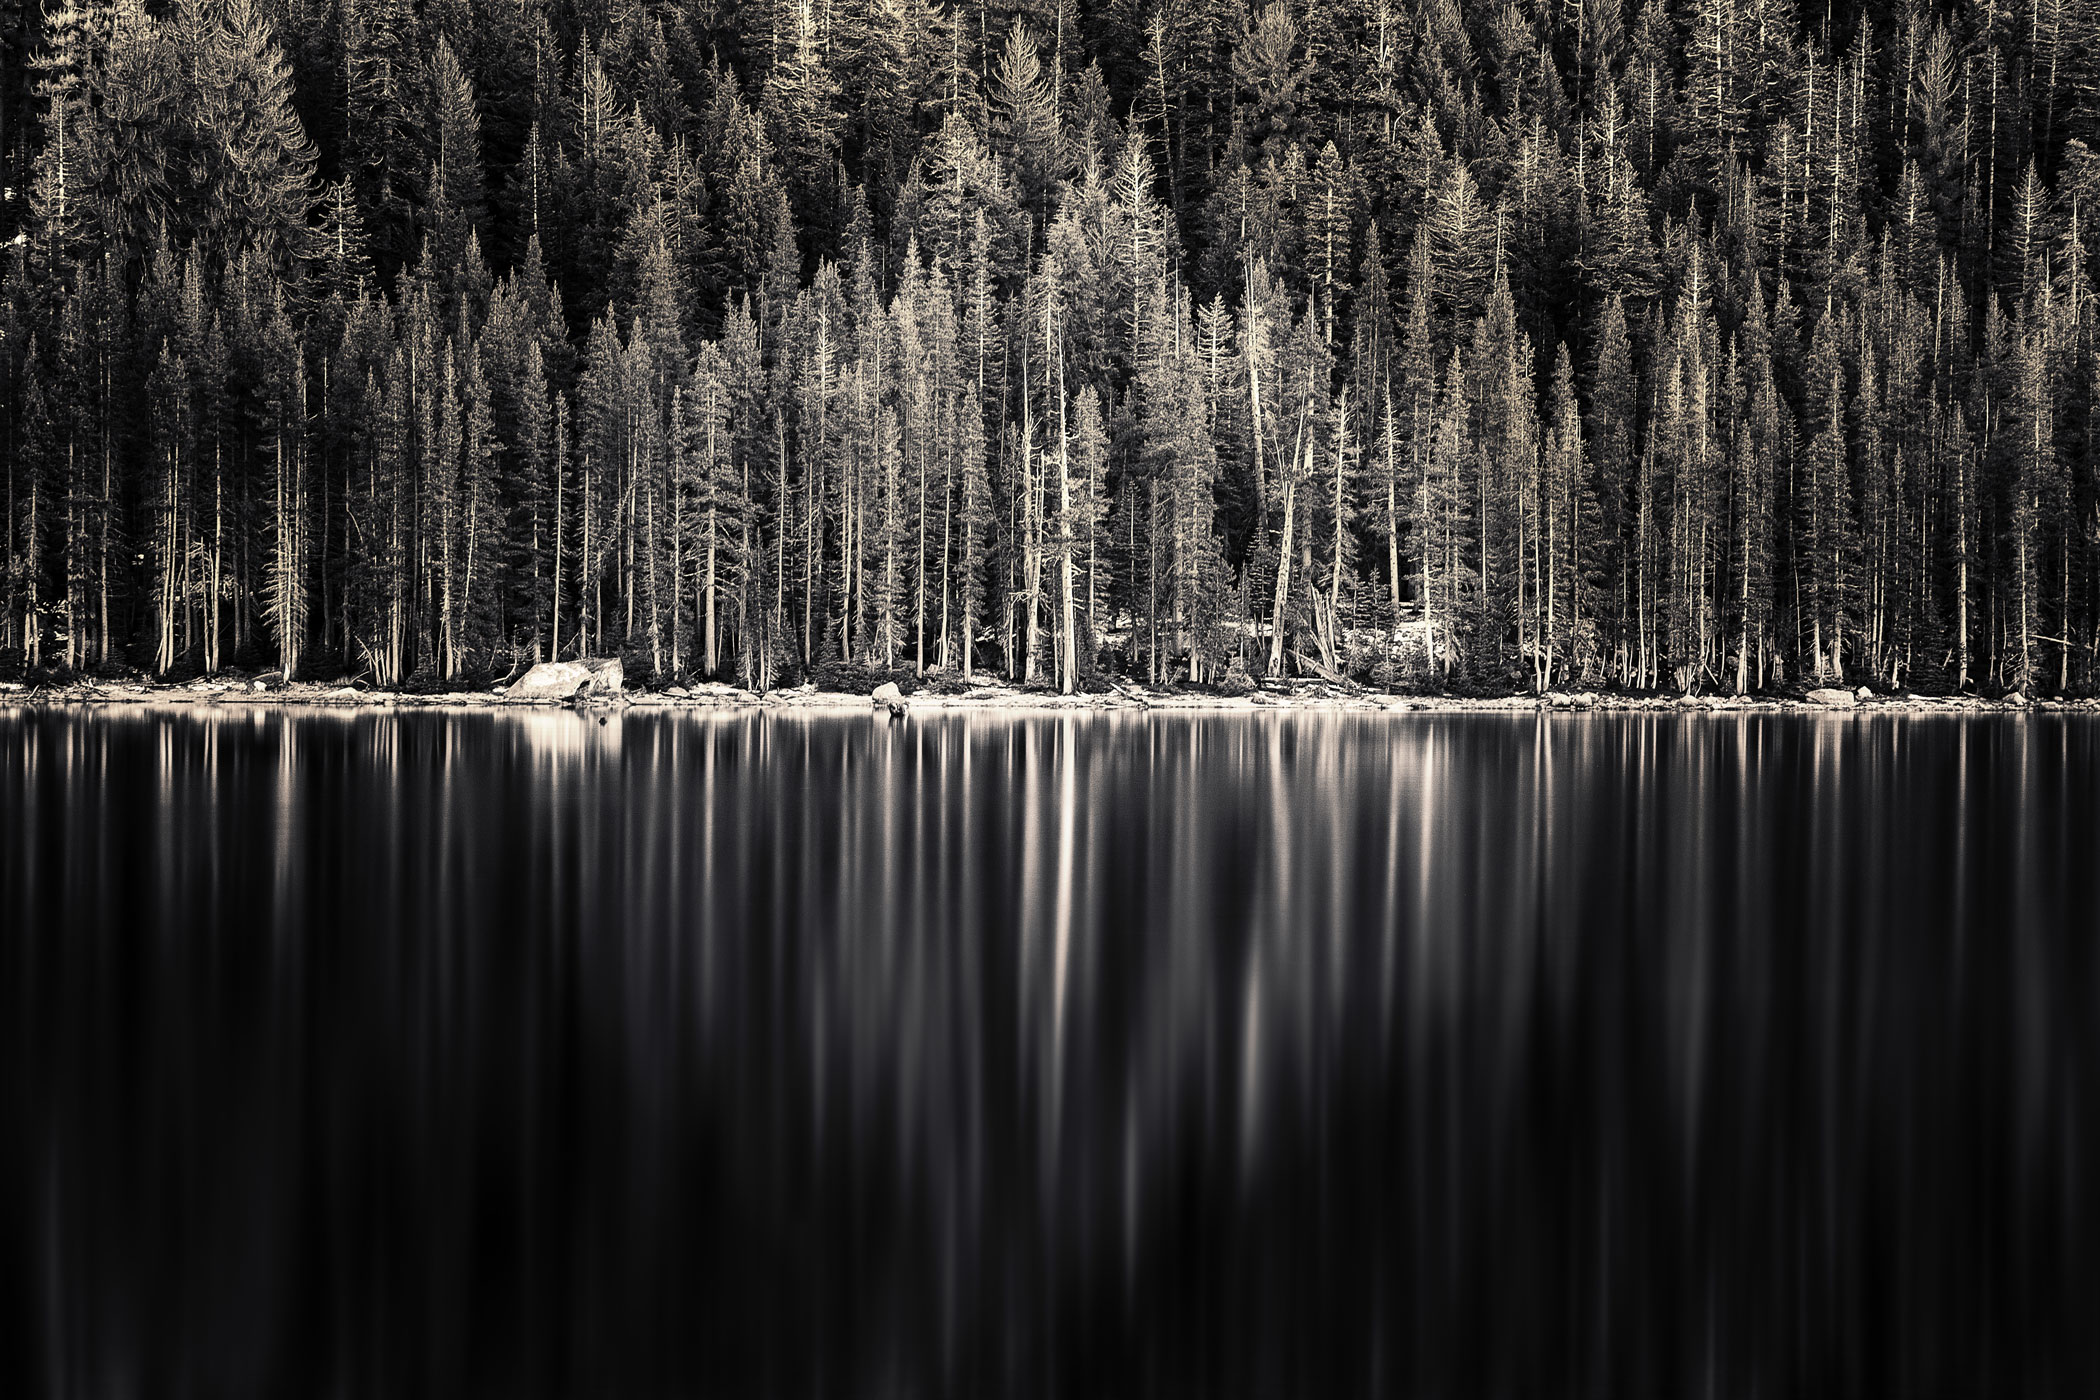 2016.11-BW-Yosemite-Reflections-v2-32-WEB.jpg